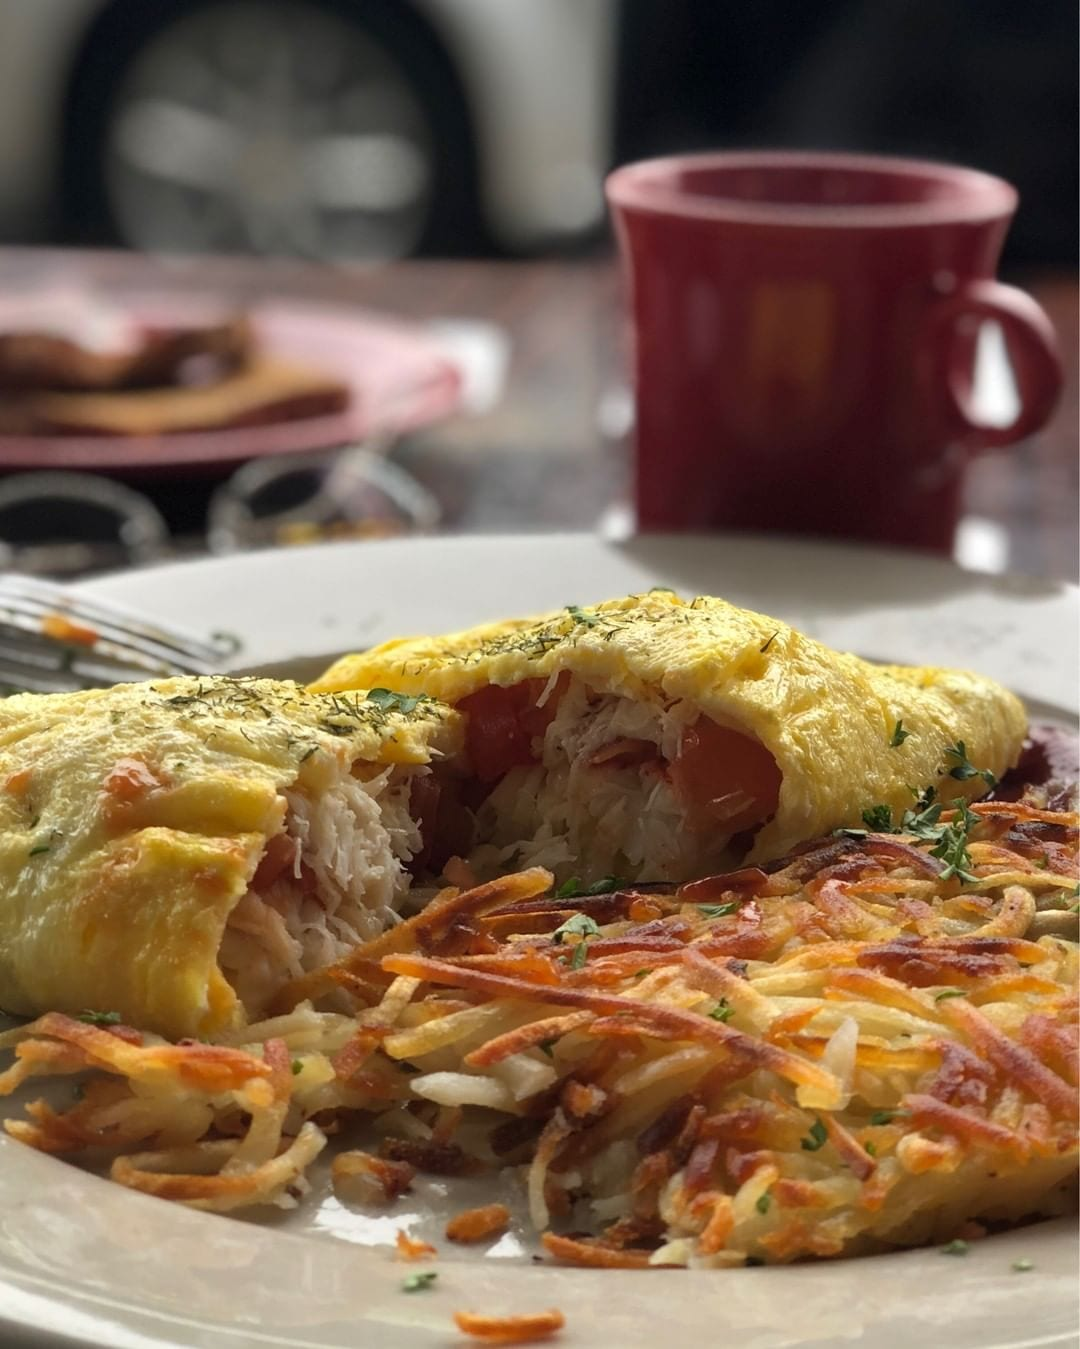 Start your day with a fresh cup of coffee and one of the best crab omelettes in San Francisco with side of crispy hashbrowns at Beach Street Grill SF located steps away from Hotel Zephyr. #goodmorningsf #visitfishermanswharf #breakfastideas